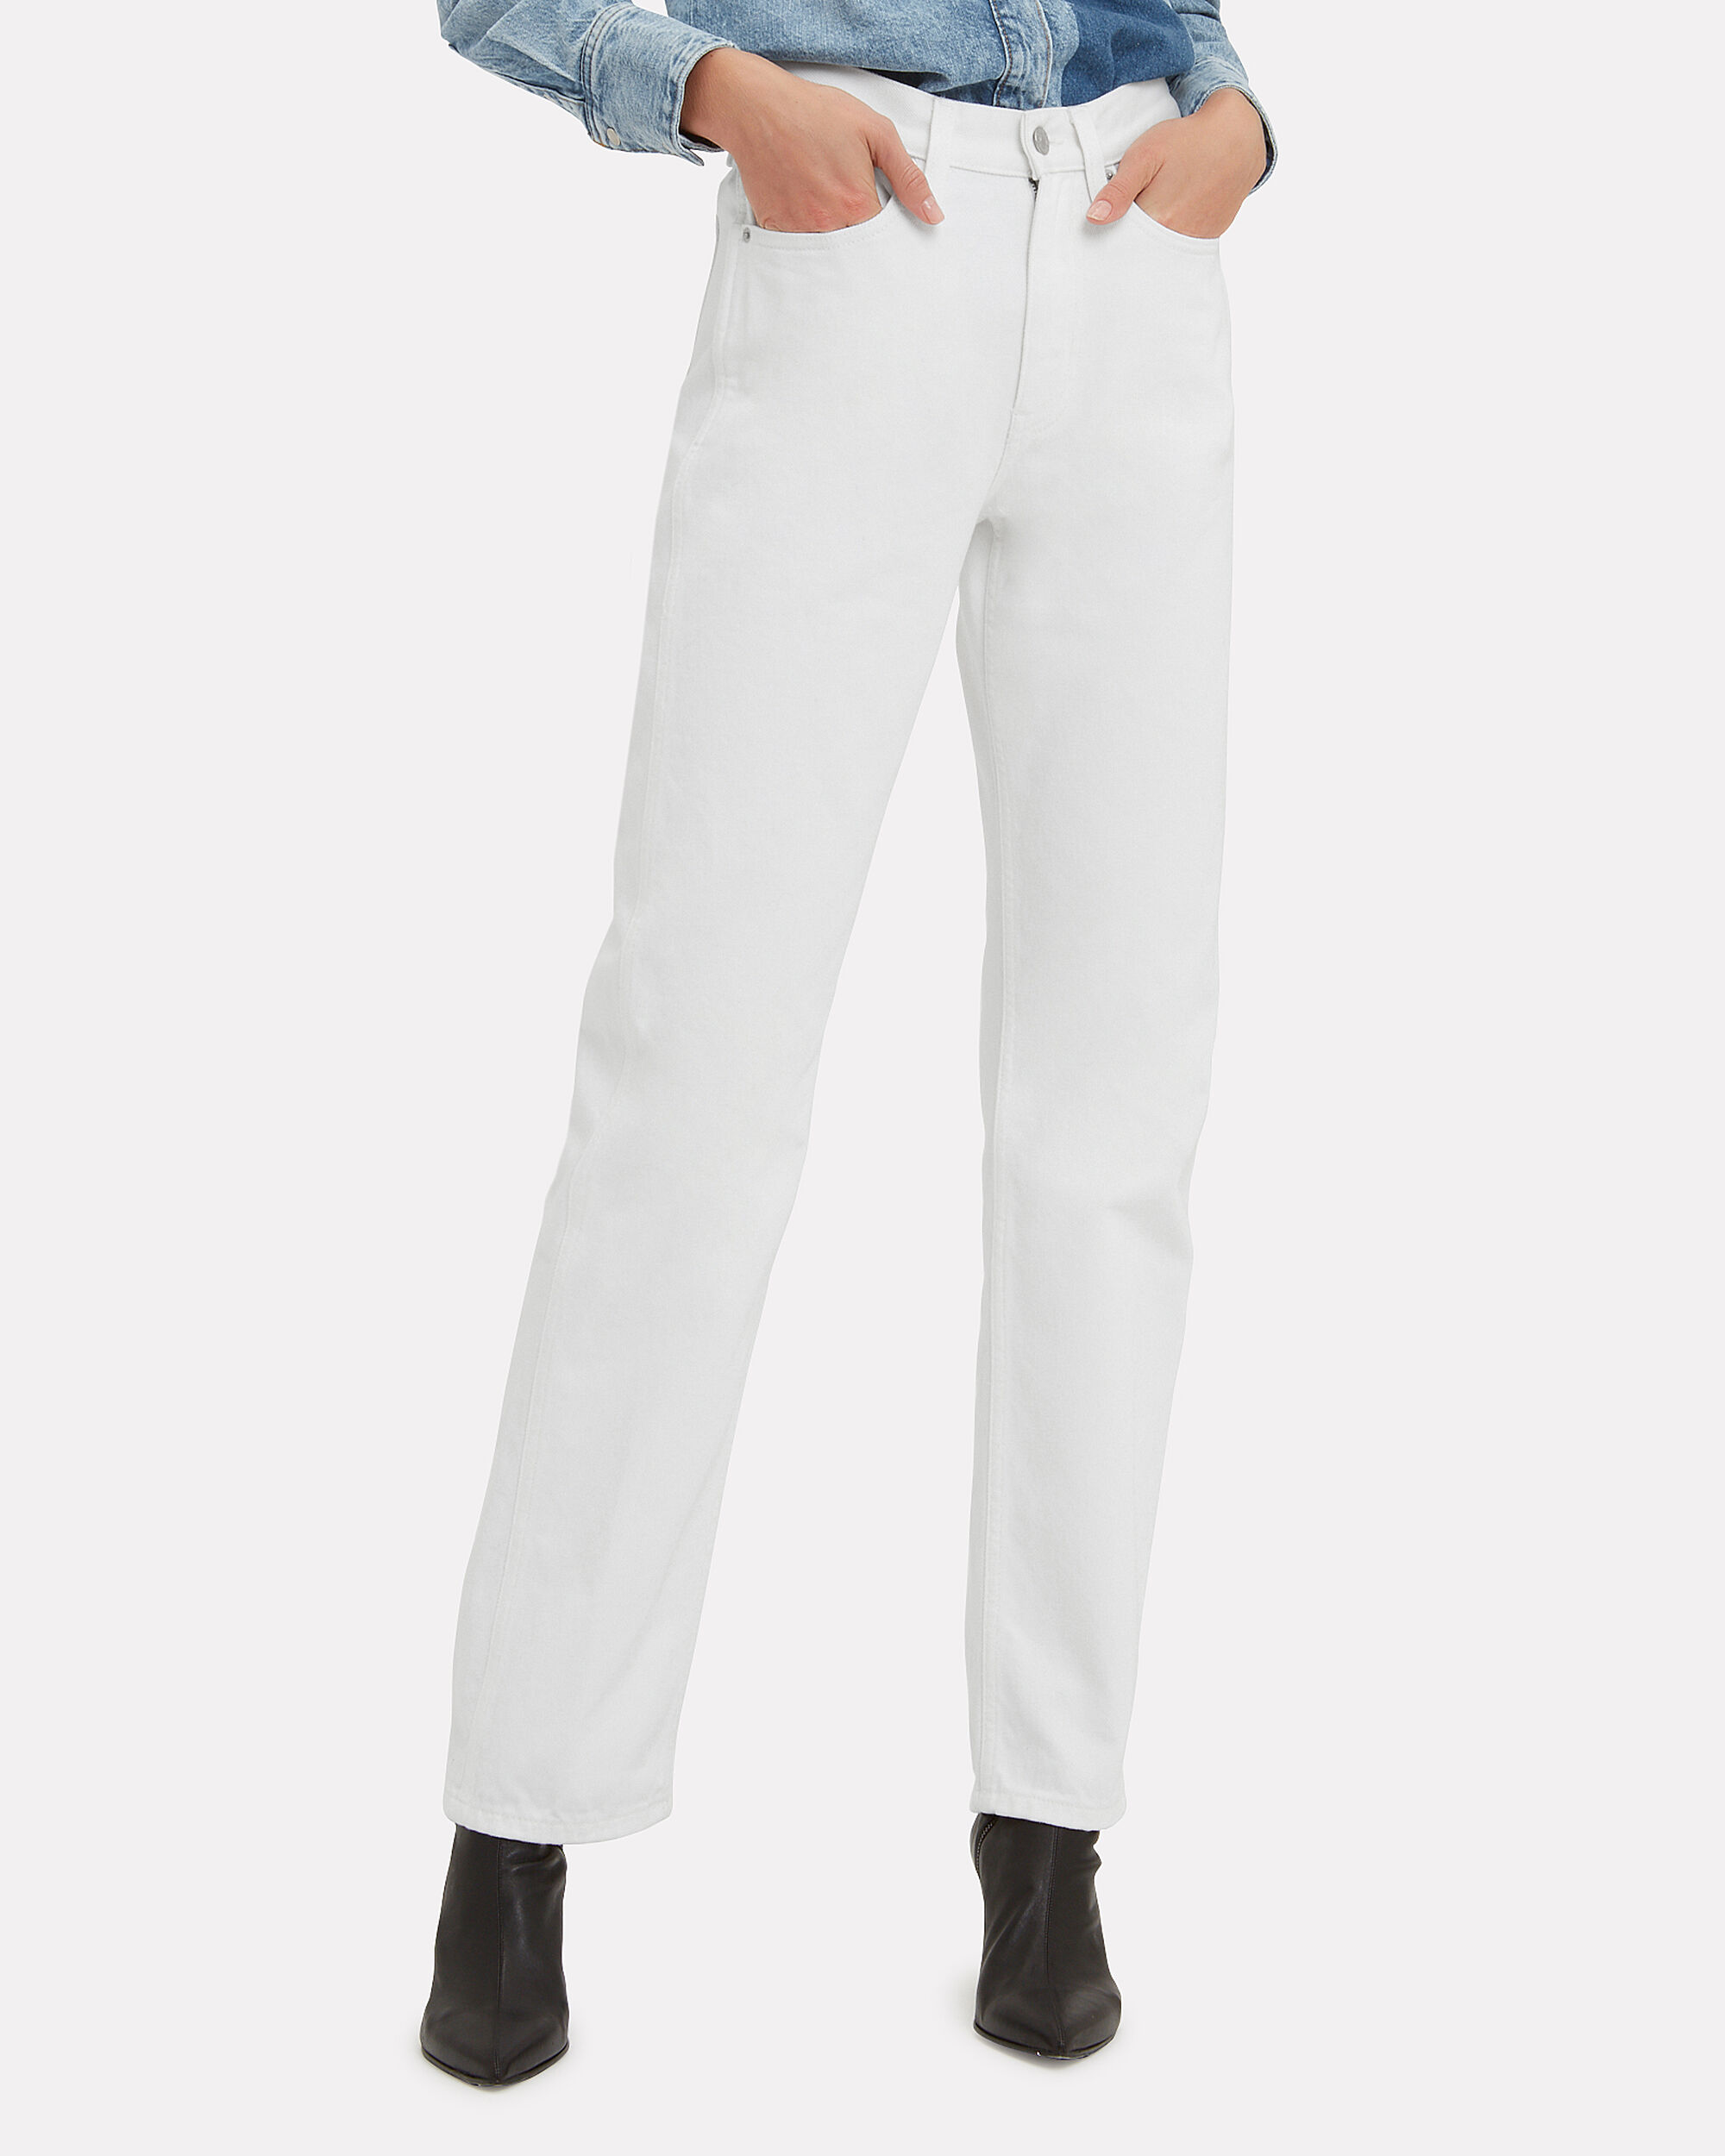 High-Rise Straight White Jeans, WHITE, hi-res